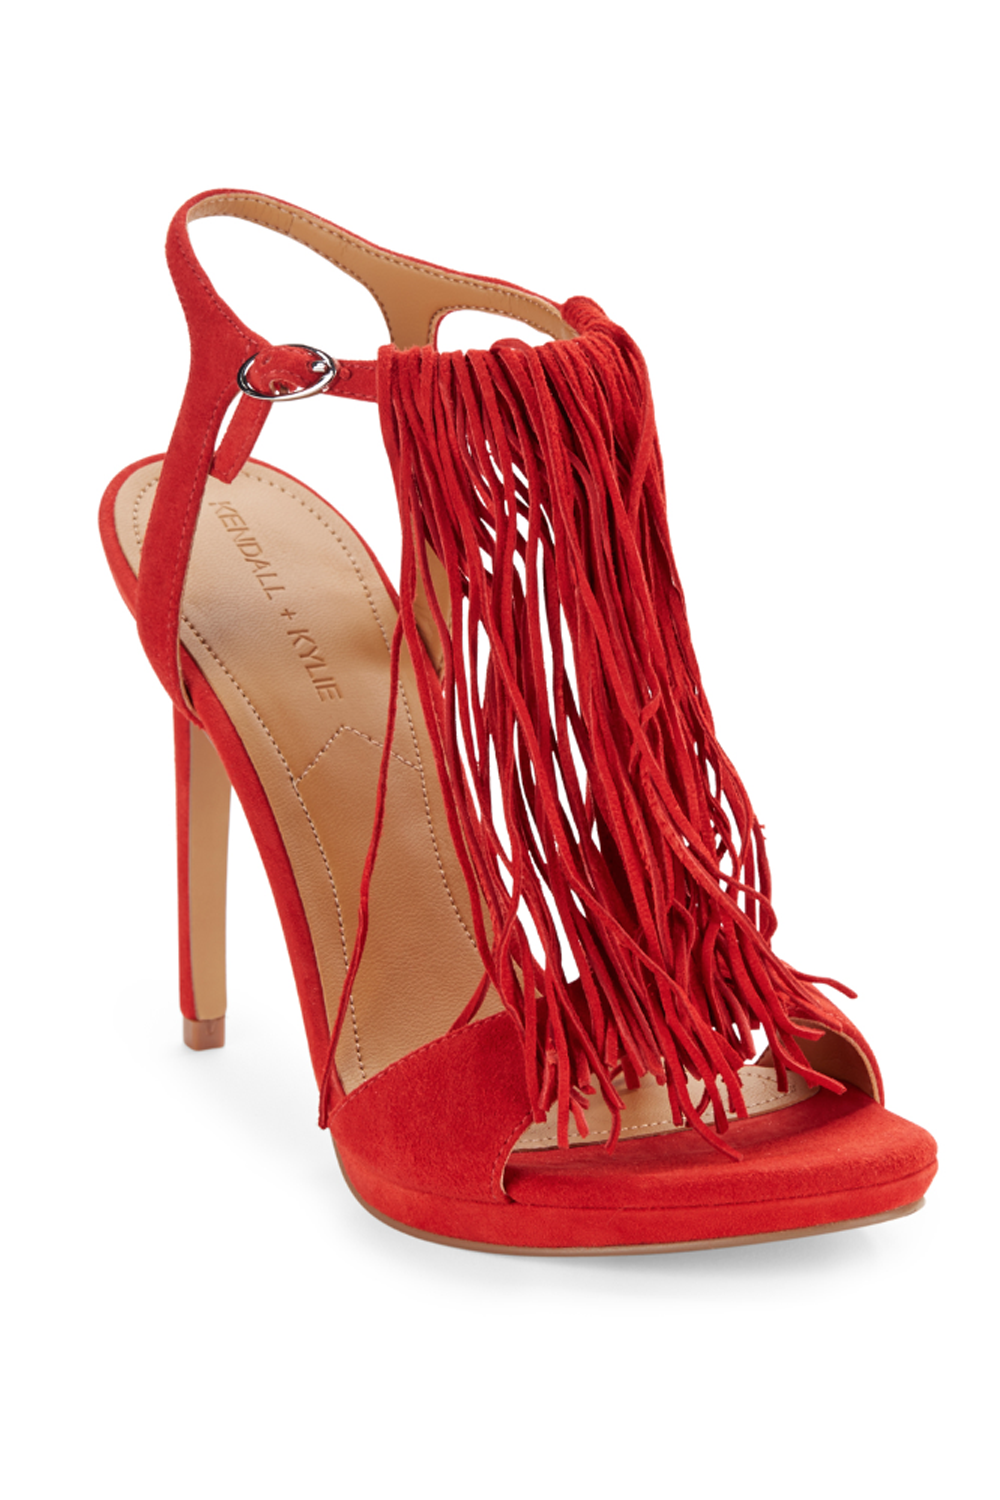 "<p>Yes, that's fringe. And flaming red. And a high, high heel. An LBD + these shoes = your go-to for a night of dancing. </p><p><em>Kendall + Kylie Aries Fringed Suede Sandals, $140; <a href=""http://www.lordandtaylor.com/webapp/wcs/stores/servlet/en/lord-and-taylor/aries-fringed-suede-sandals-0001-kkariess--1"" target=""_blank"">lordandtaylor.com</a></em></p>"